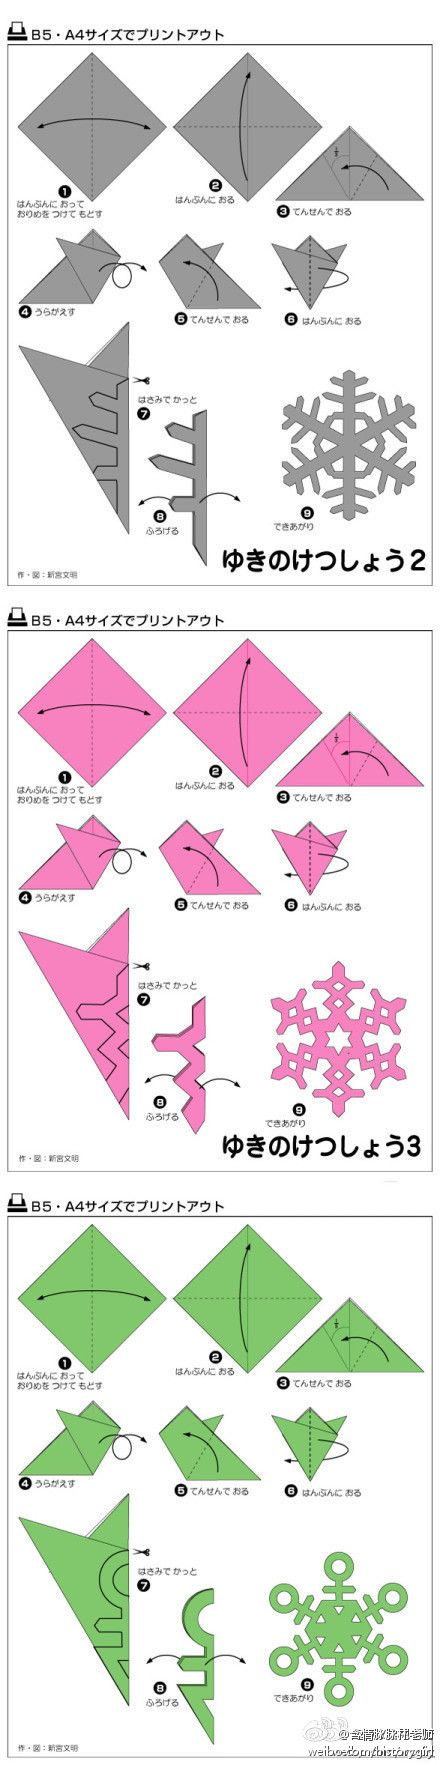 snowflakes cut-out instructions - then glue all the snowflakes on a styrofoam wreath and decorate with a red ribbon.